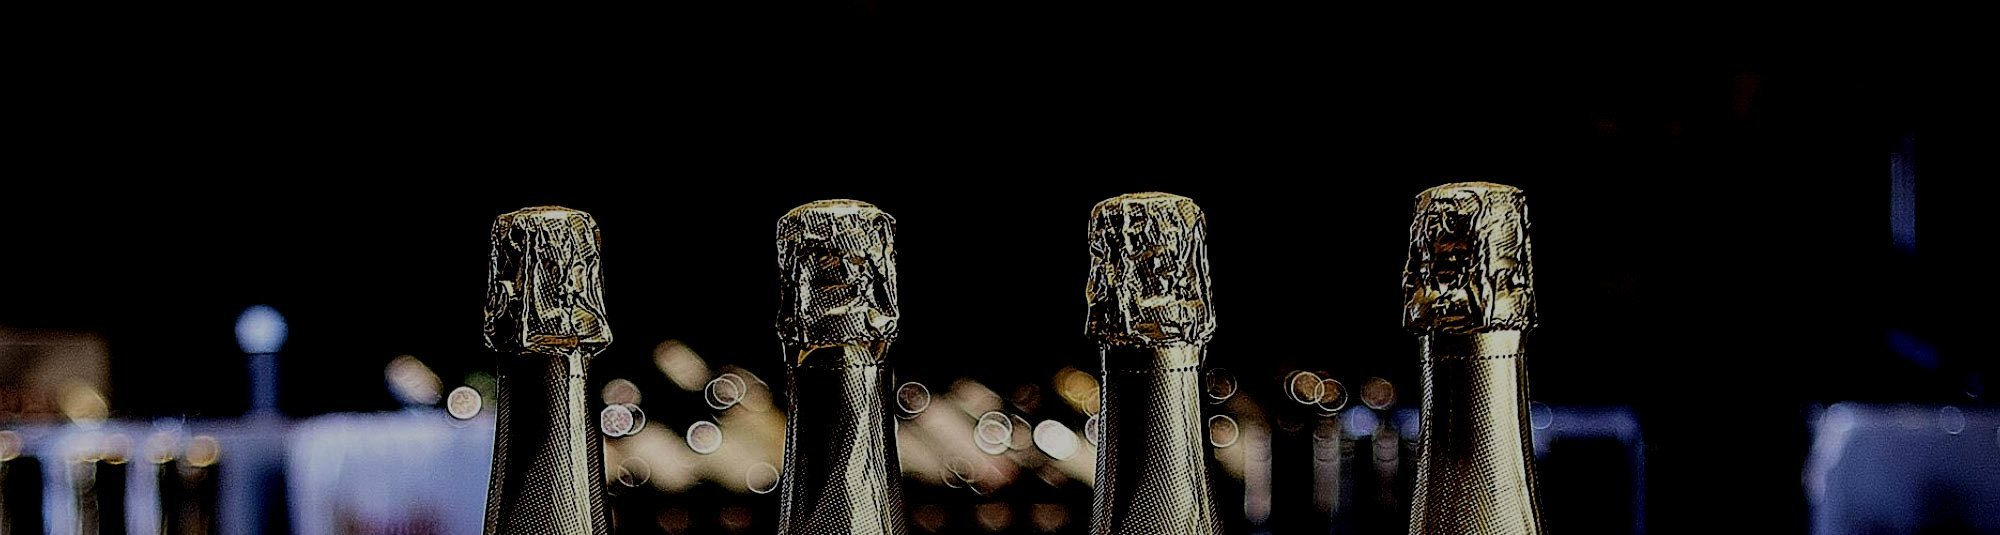 champagne-sparkling-wines-image